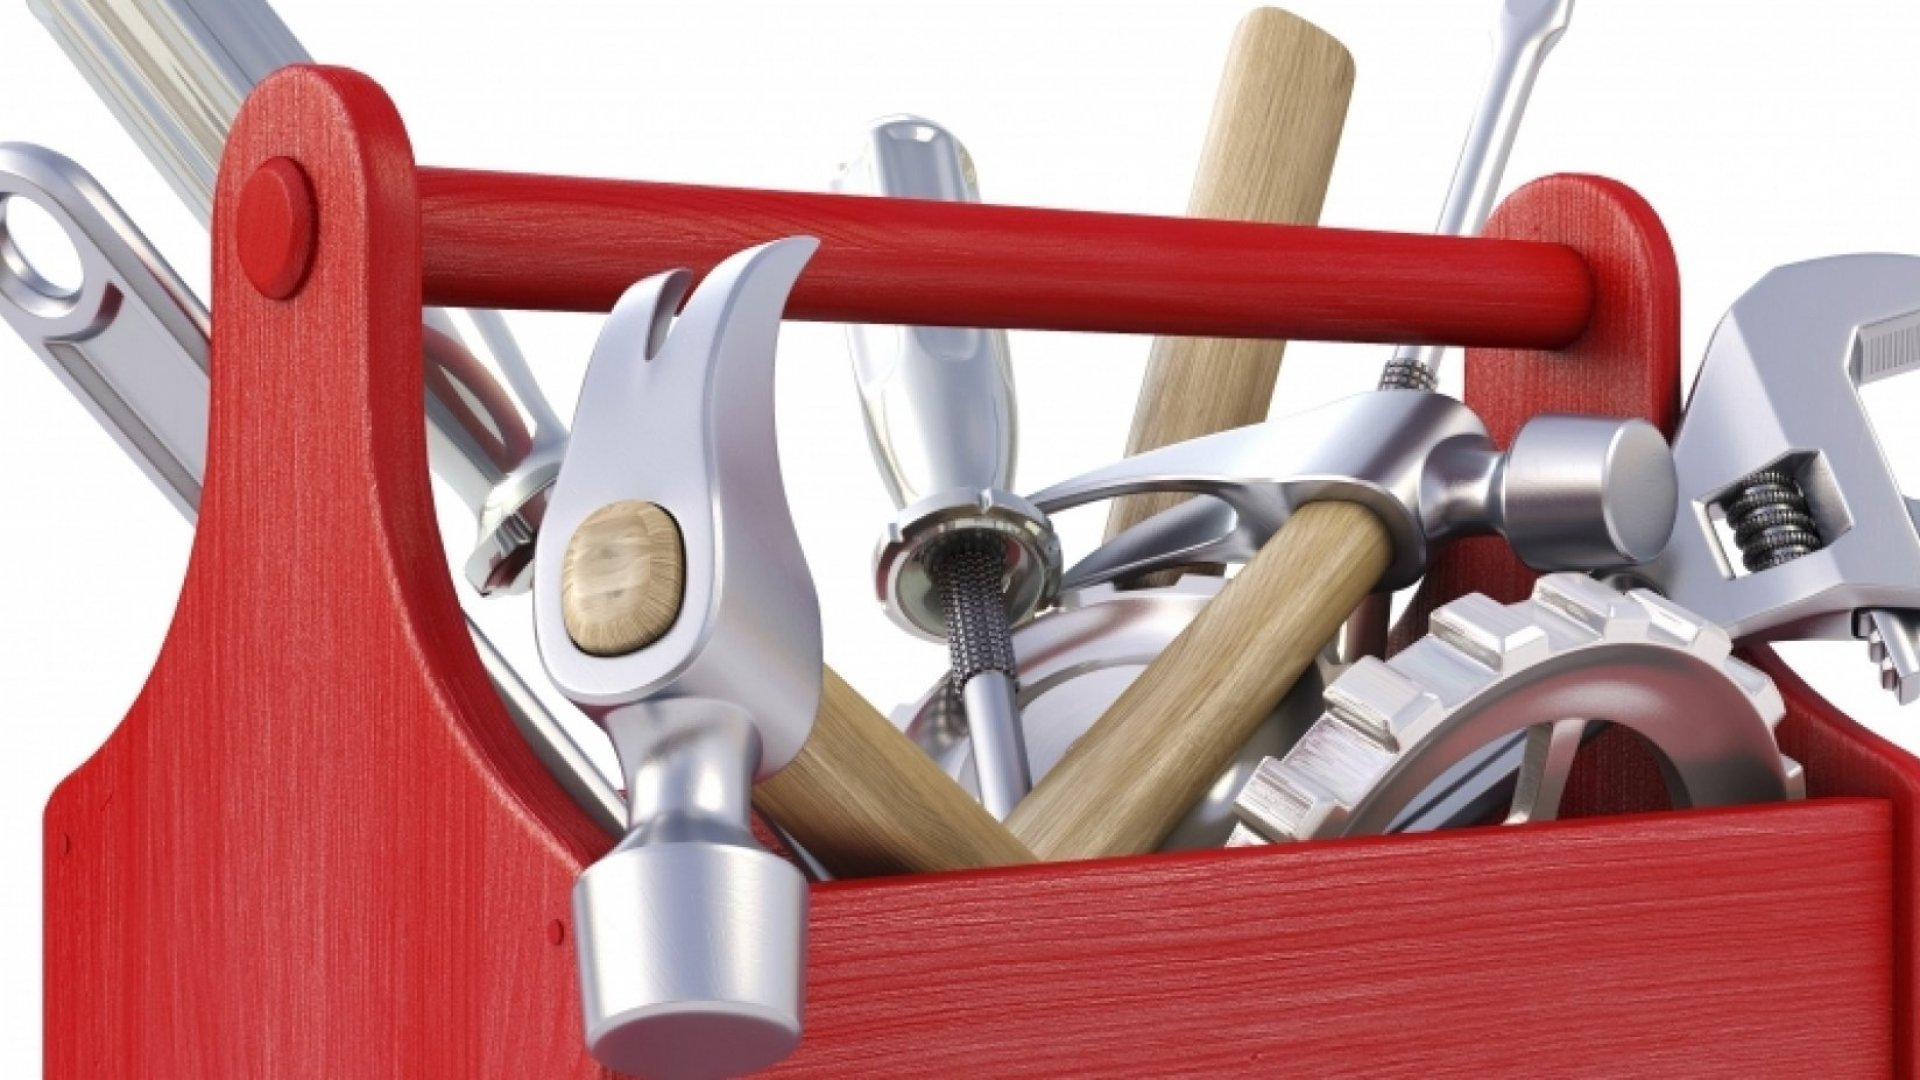 7 Tools for Your SMB in 2016